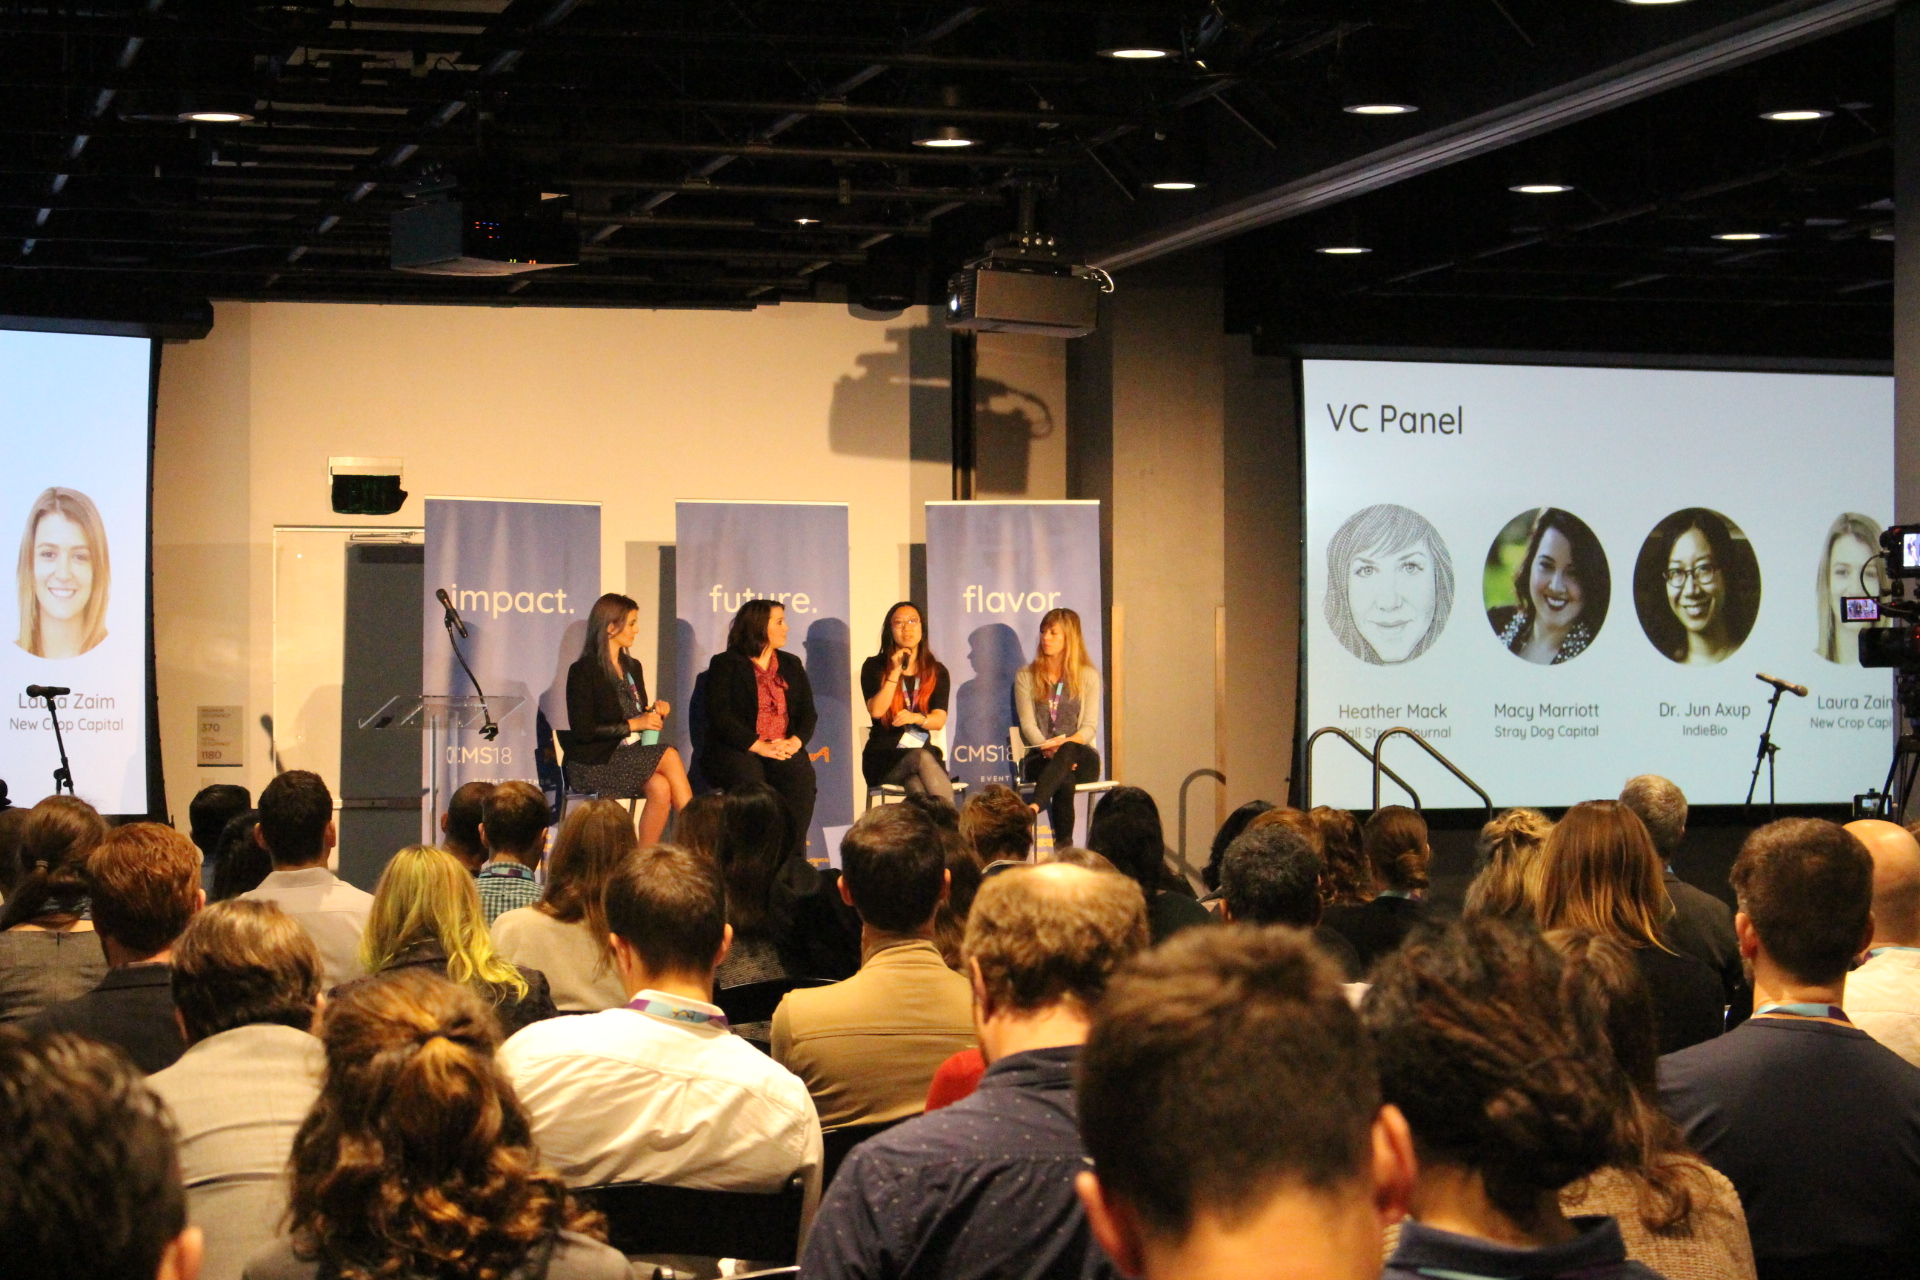 A panel at the Cultured Meat Symposium brought together venture capitalists investing in clean meat. Moderator Heather Mack from the Wall Street Journal interviewed Jun Axup from IndieBio, Macy Marriott from Stray Dog Capital, and Laura Zaim from New Crop Capital.